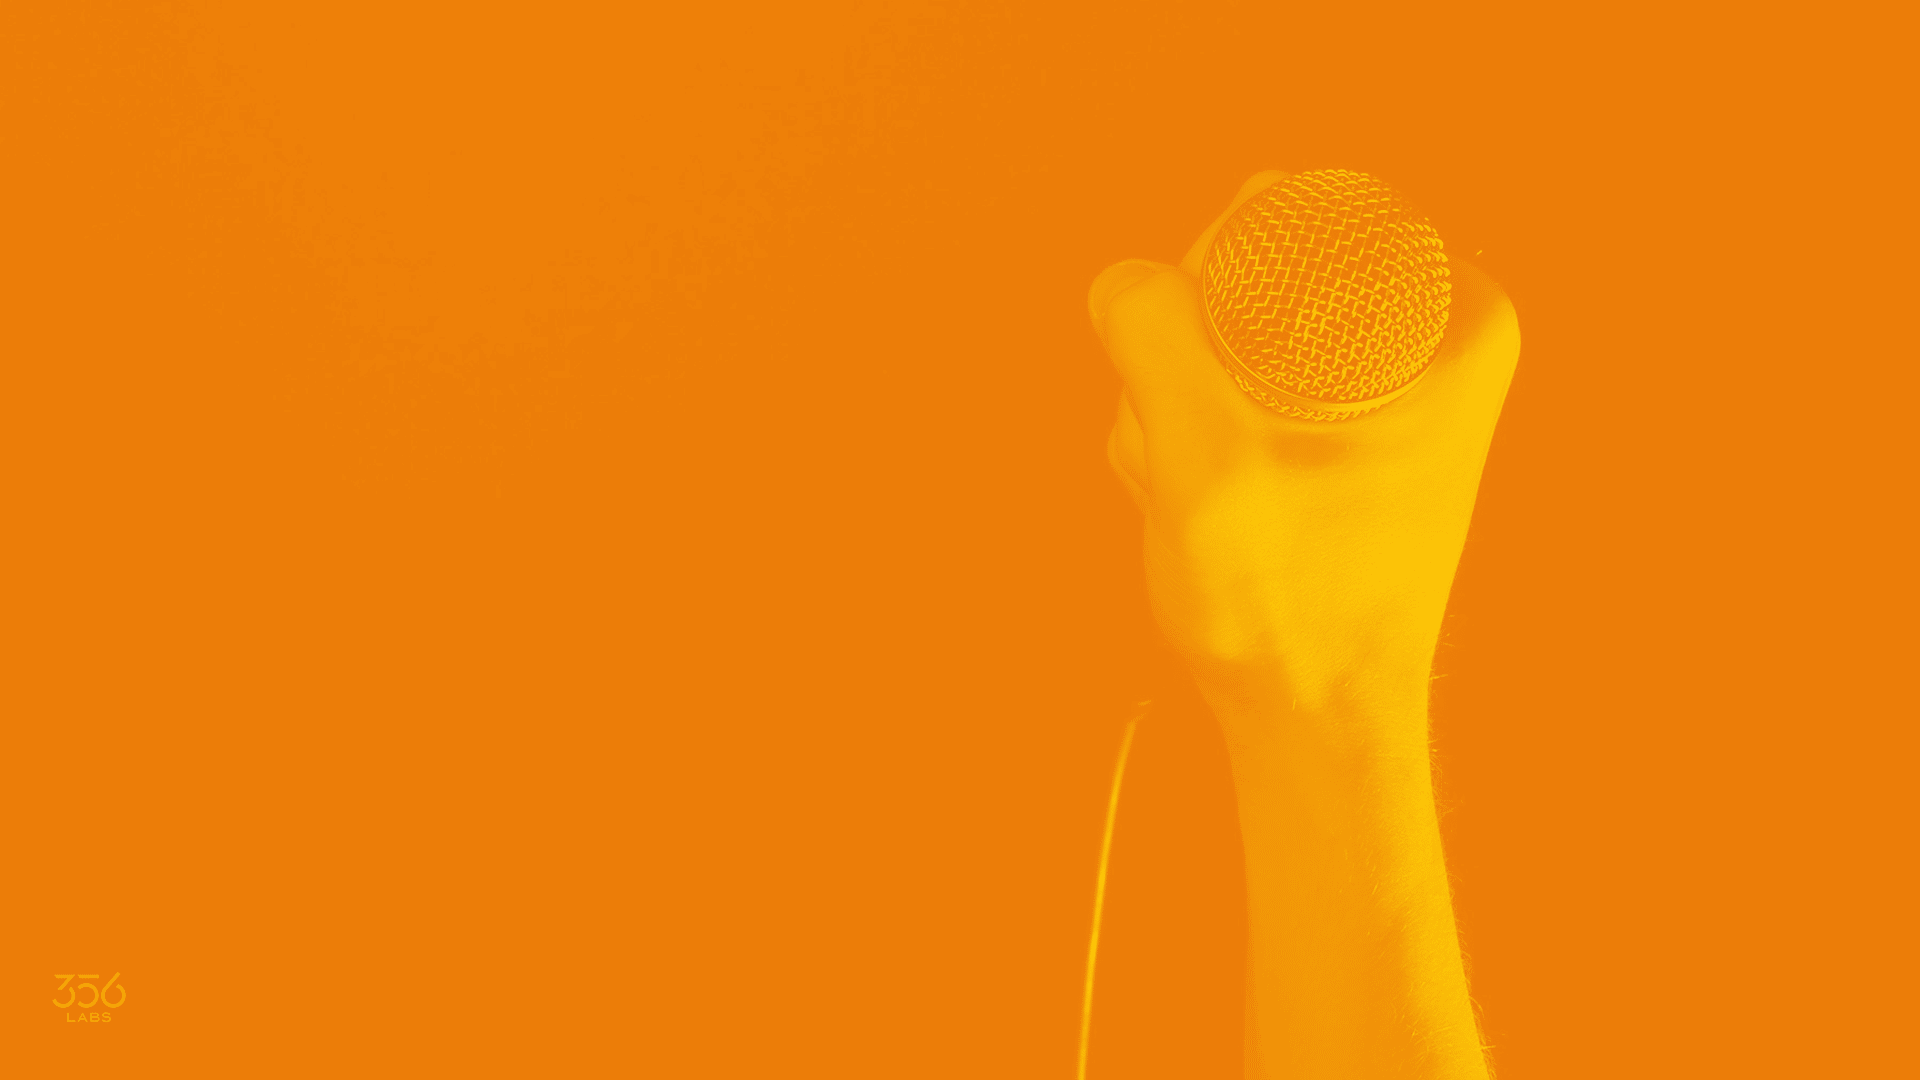 Image of a hand holding a microphone